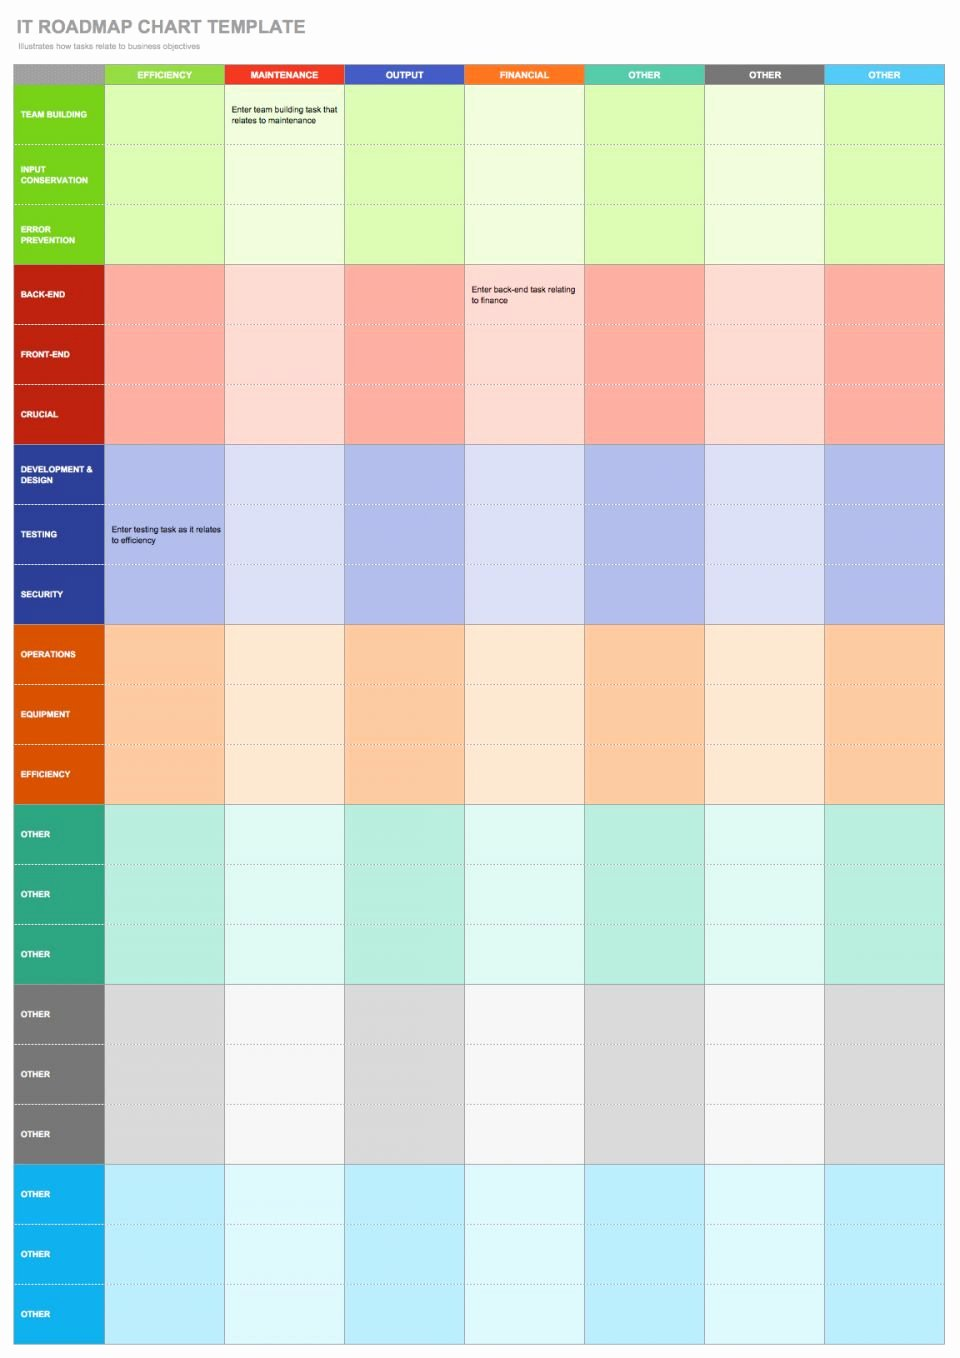 Roadmap Template Excel Free Download Fresh Free Technology Roadmap Templates